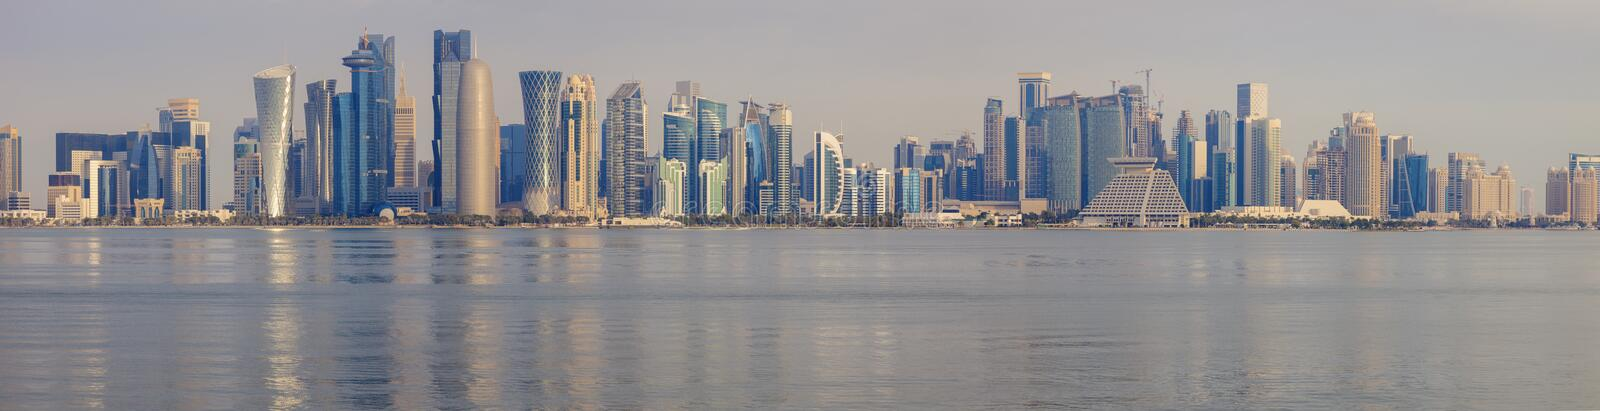 Vista panoramica di Doha immagine stock